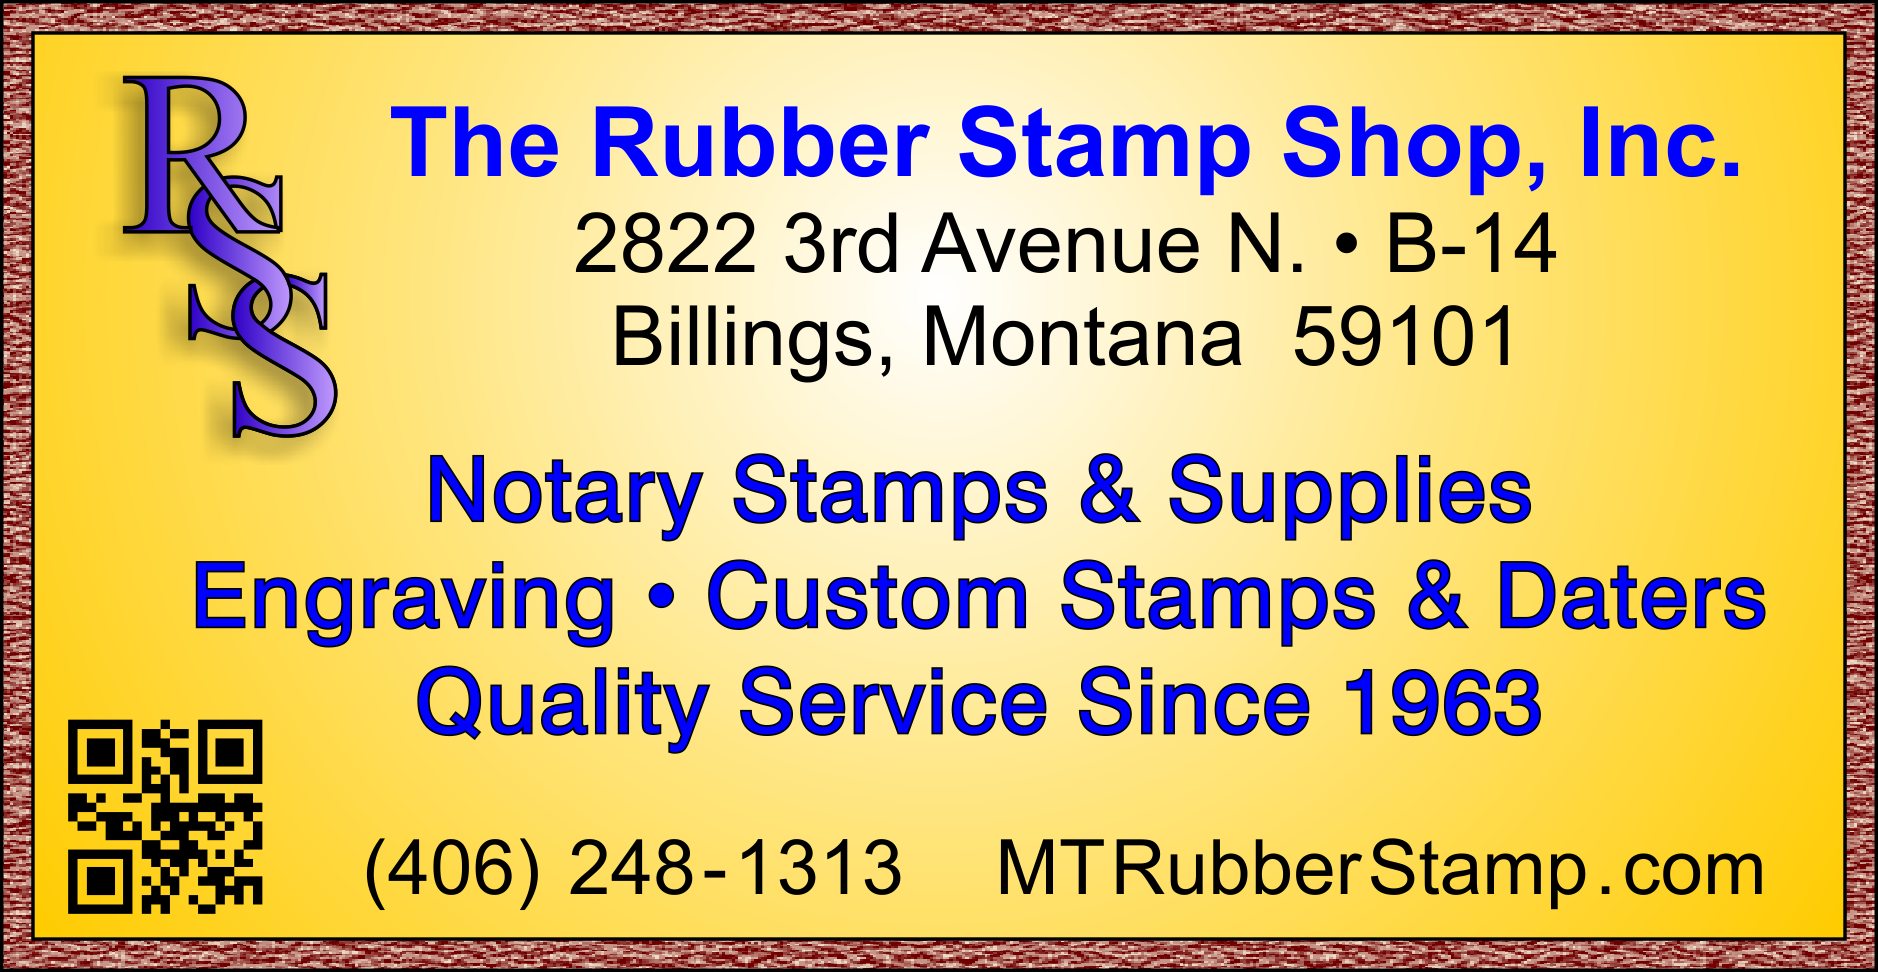 The Rubber Stamp Shop Photo